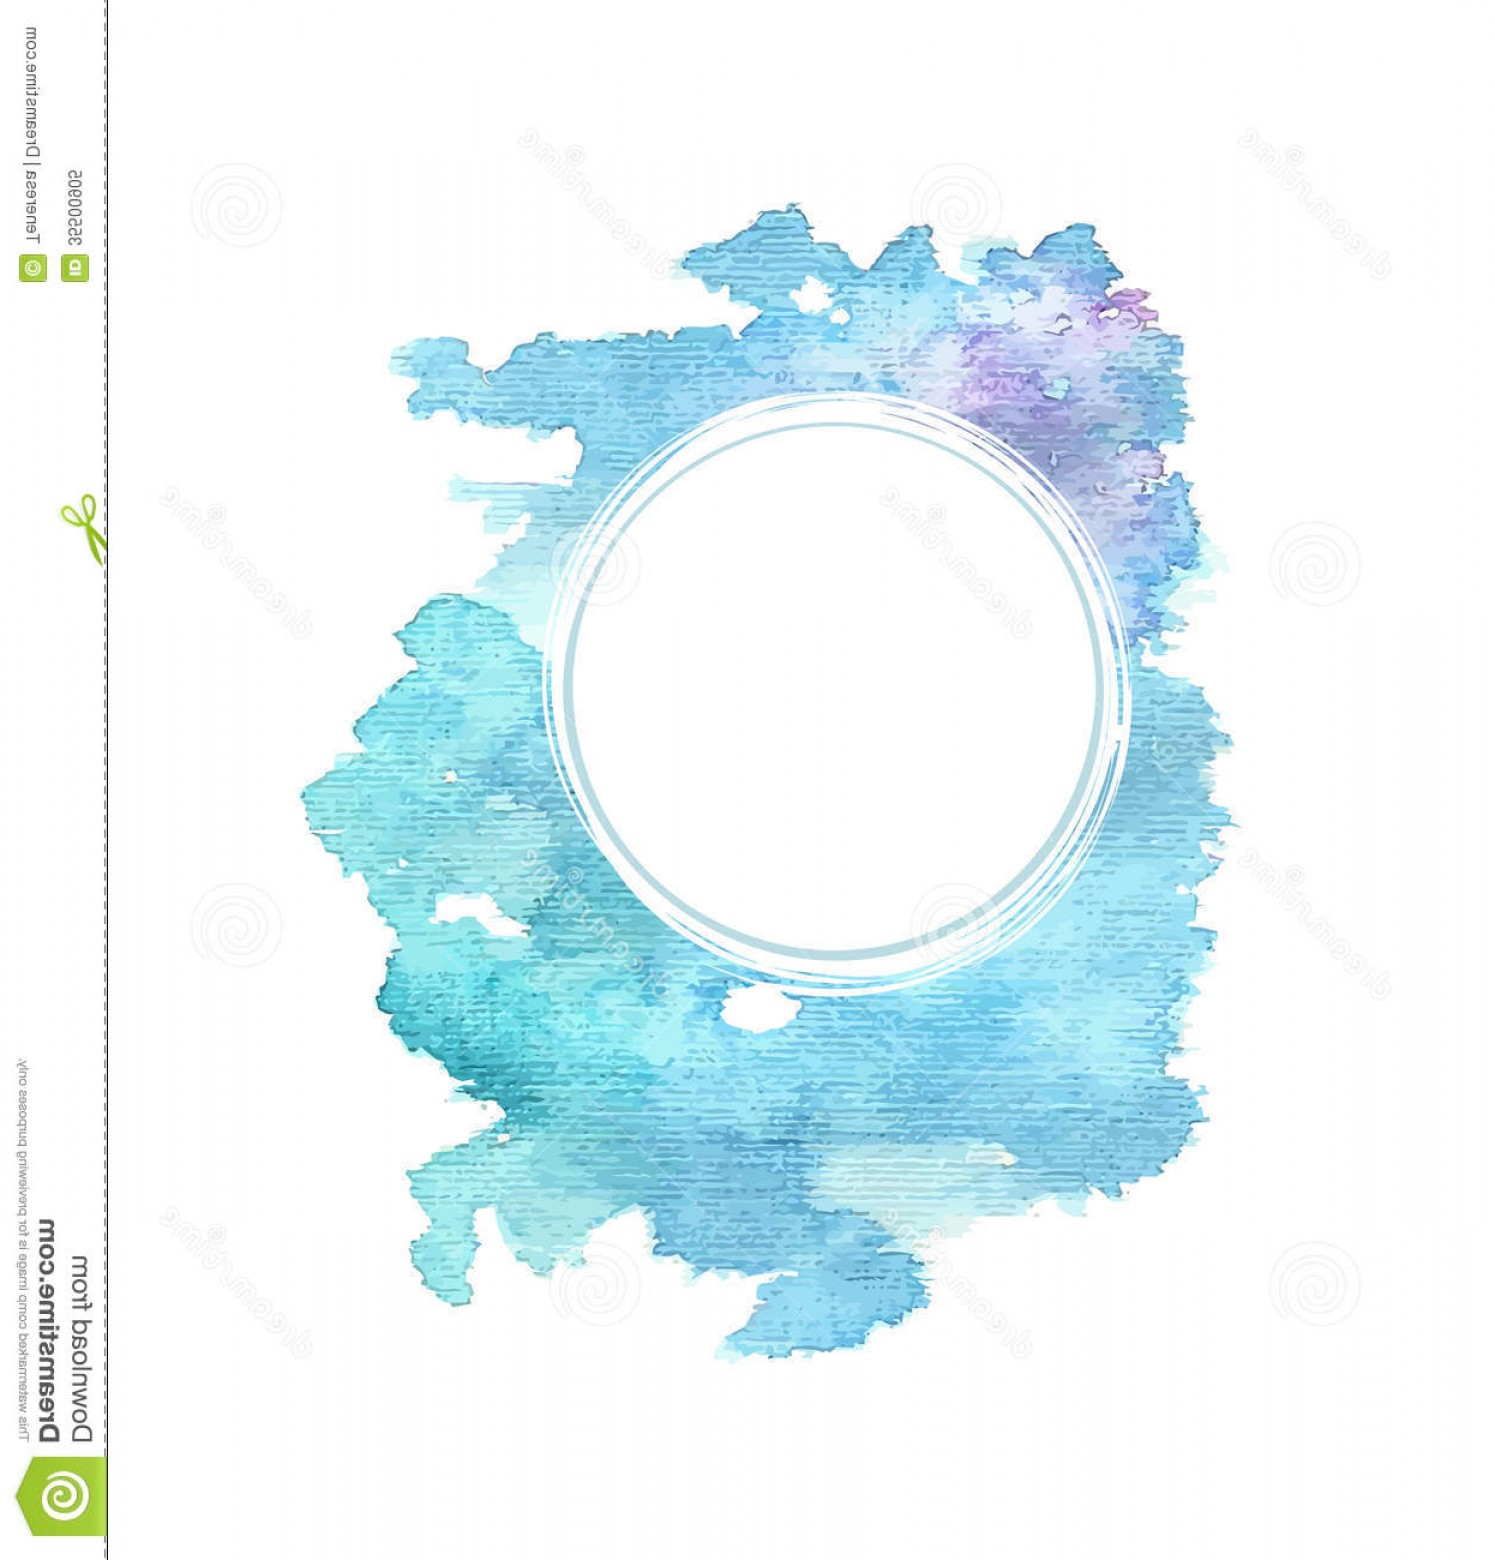 Watercolor Vector Background Free: Royalty Free Stock Photo Abstract Blue Watercolor Background Editable Vector Illustration Image